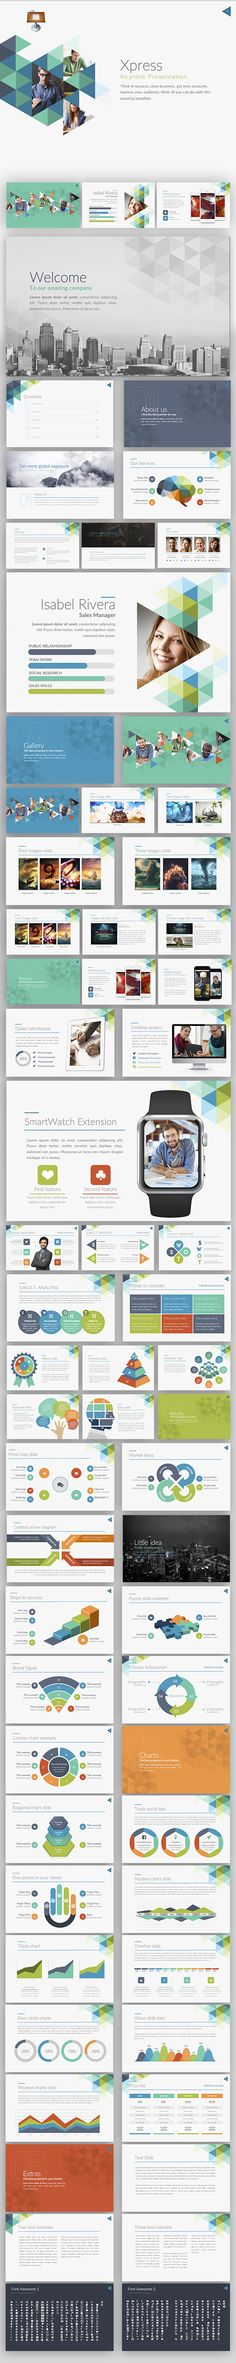 Xpress - Keynote Template. Download here: http://graphicriver.net/item/xpress-keynote-template/14788628?ref=ksioks